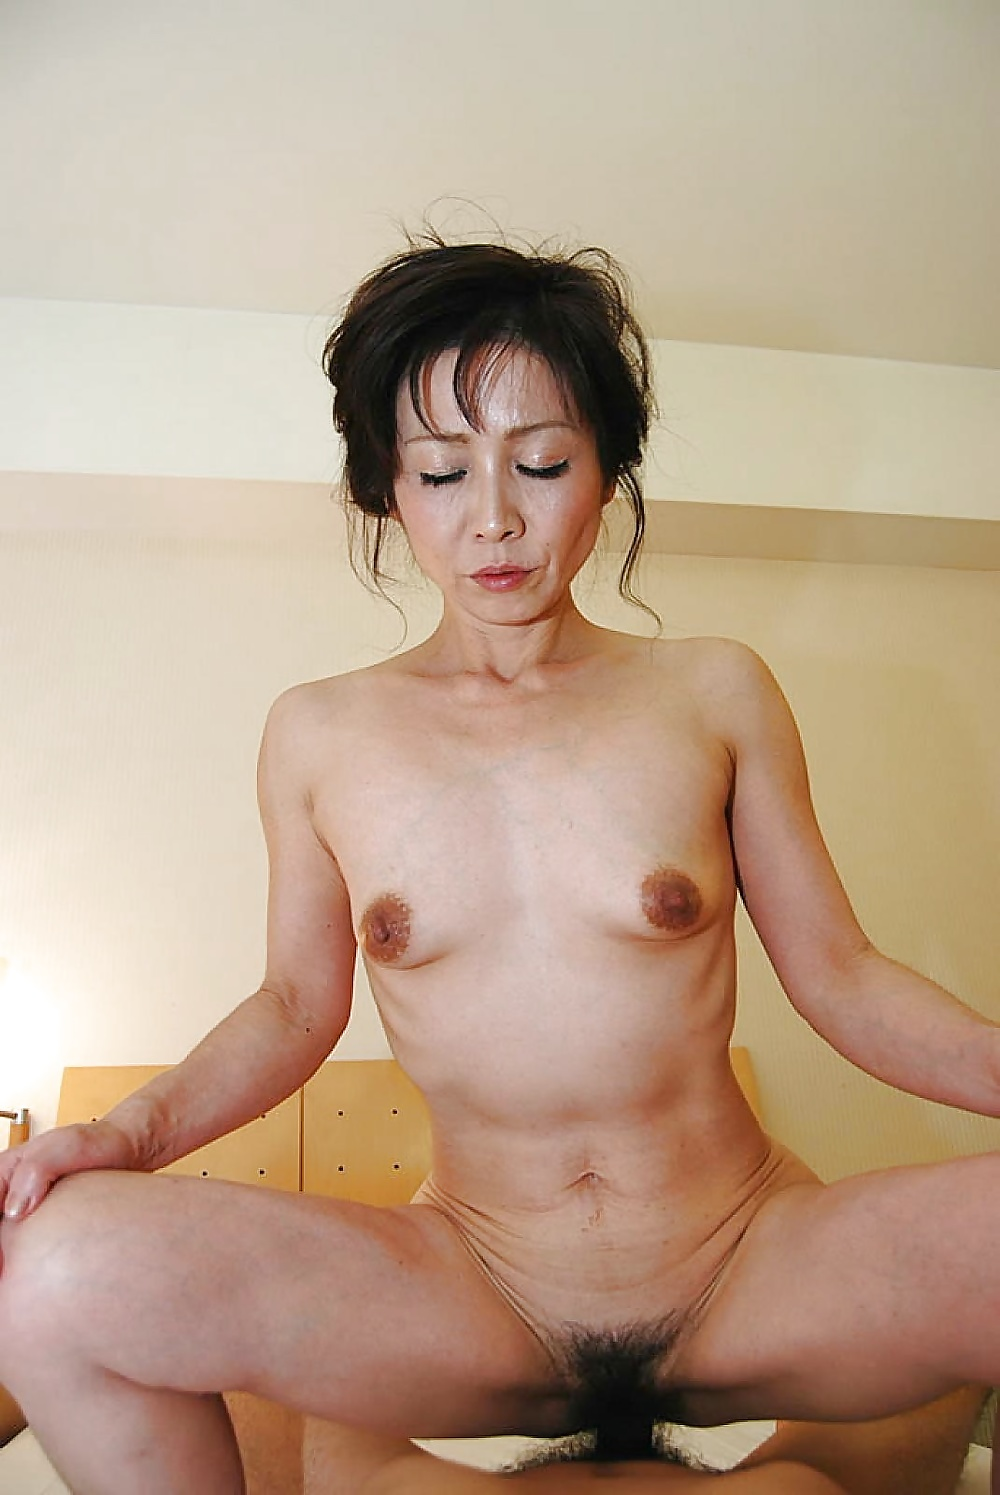 lesbian anal japanese dad fuck porn videos monster cock